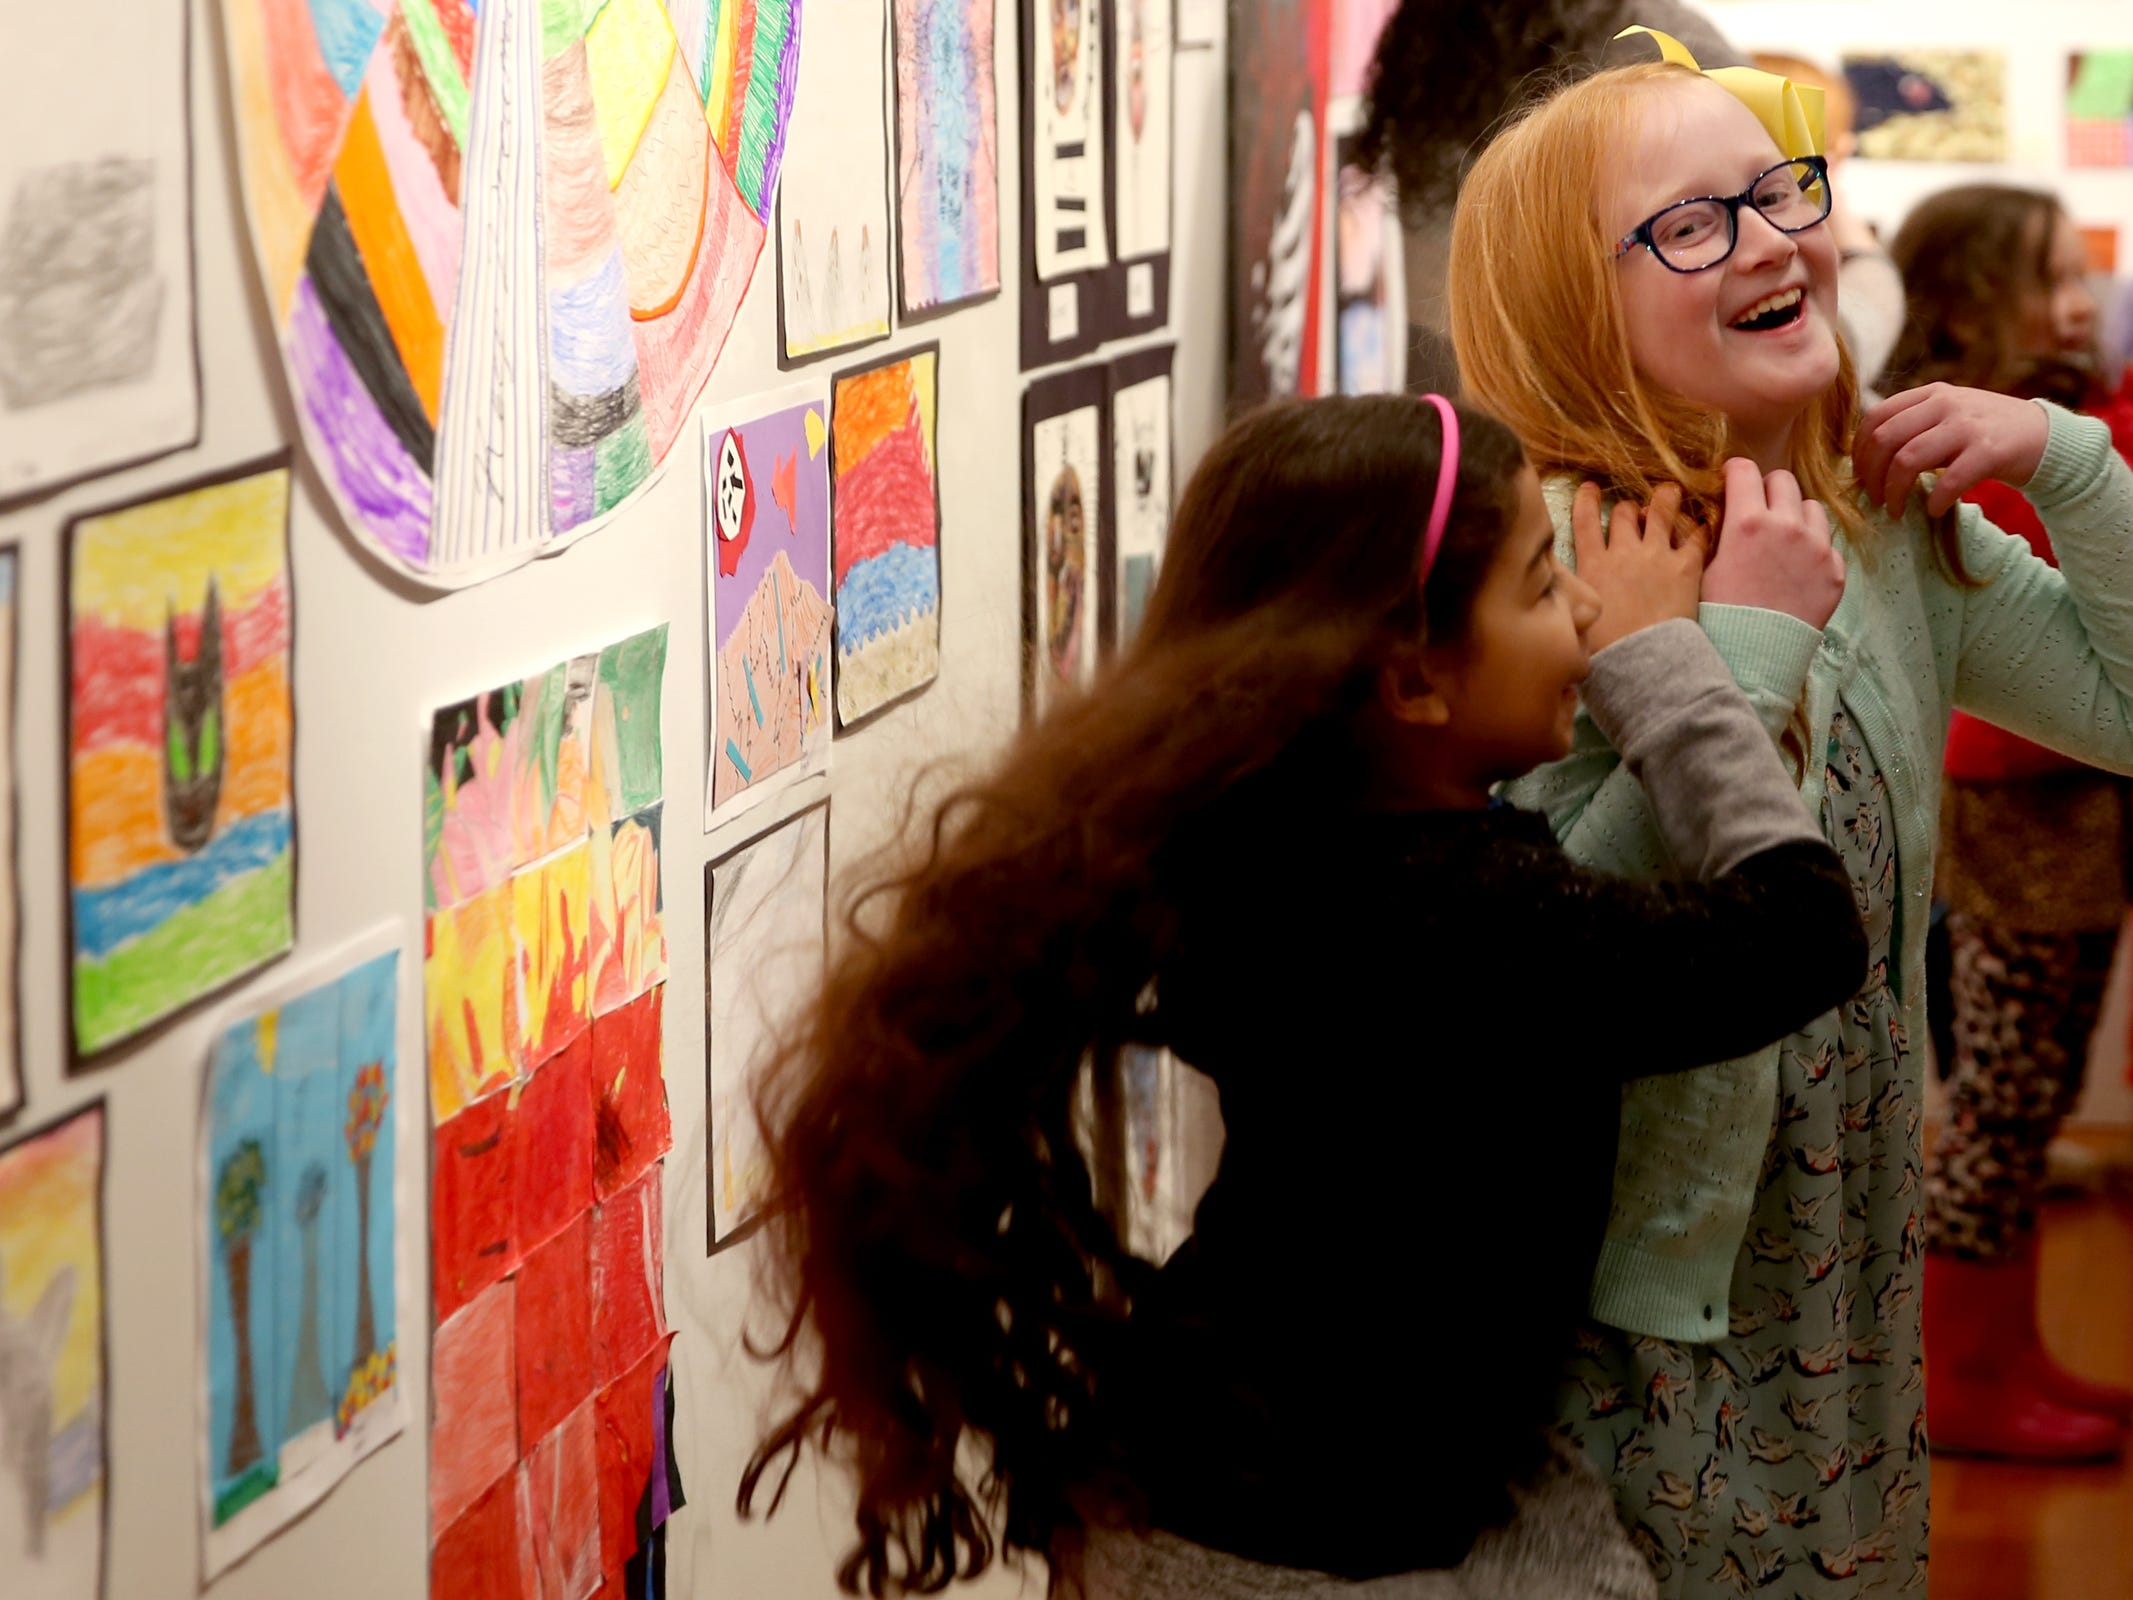 Olivia McCoy, left, and Grace Ball, both Sunshine Christian School second-graders, play during the awards reception for the 10th annual Young Artists' Showcase at the Bush Barn Art Center in Salem on March 9, 2019. The exhibit features artwork by more than 400 students in Marion, Polk and Yamhill counties and runs through April 20.